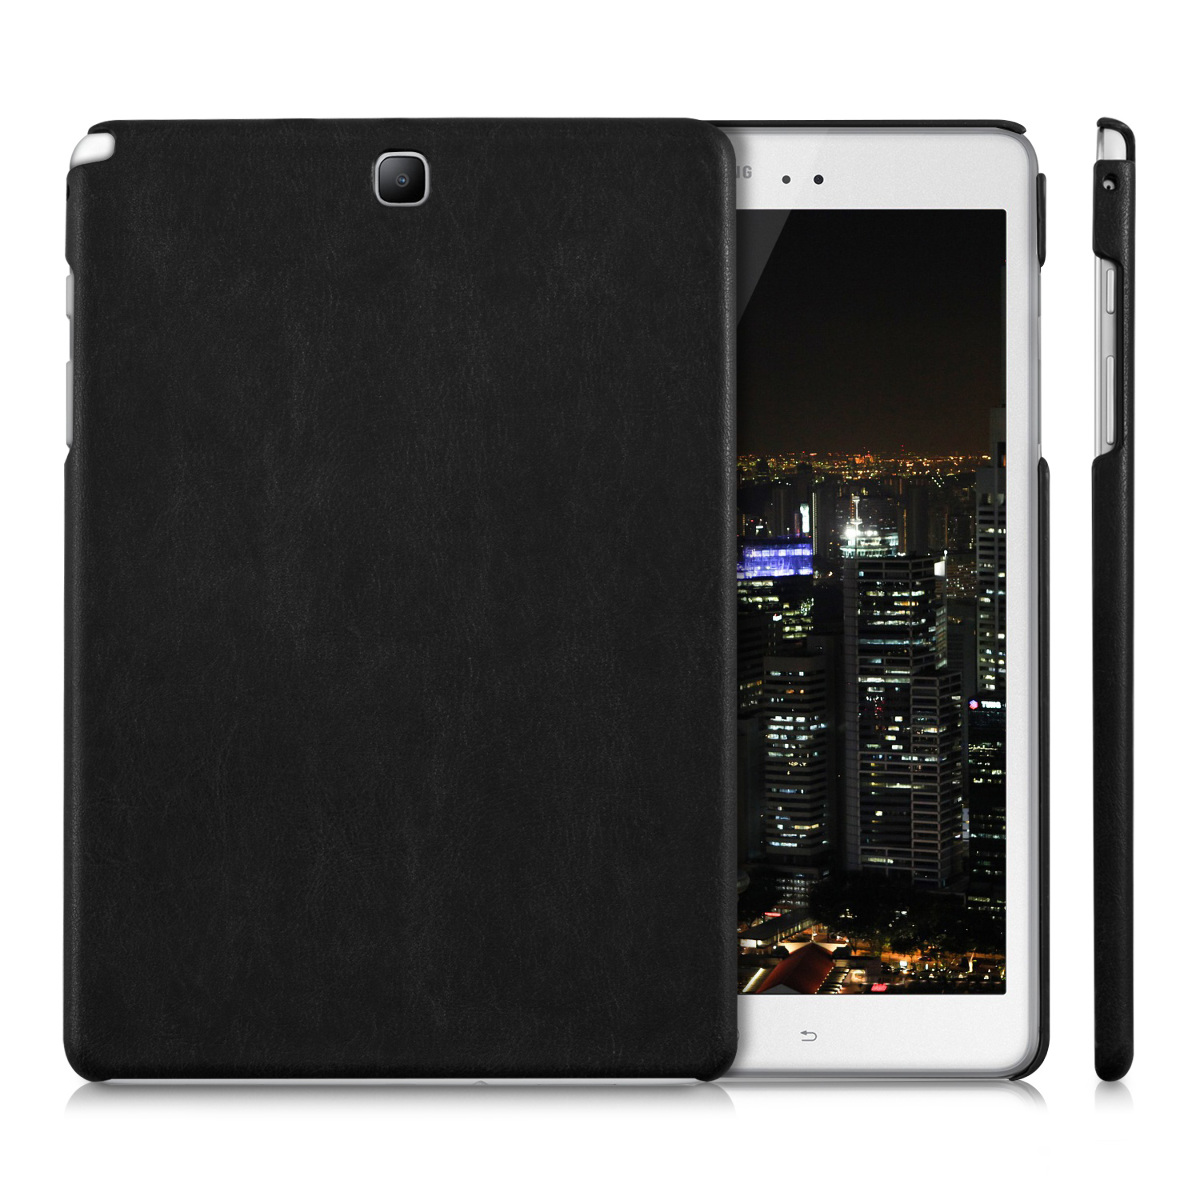 ETUI-RIGIDE-CASE-POUR-SAMSUNG-GALAXY-TAB-A-9-7-T550N-T555N-HOUSSE-DE-PROTECTION